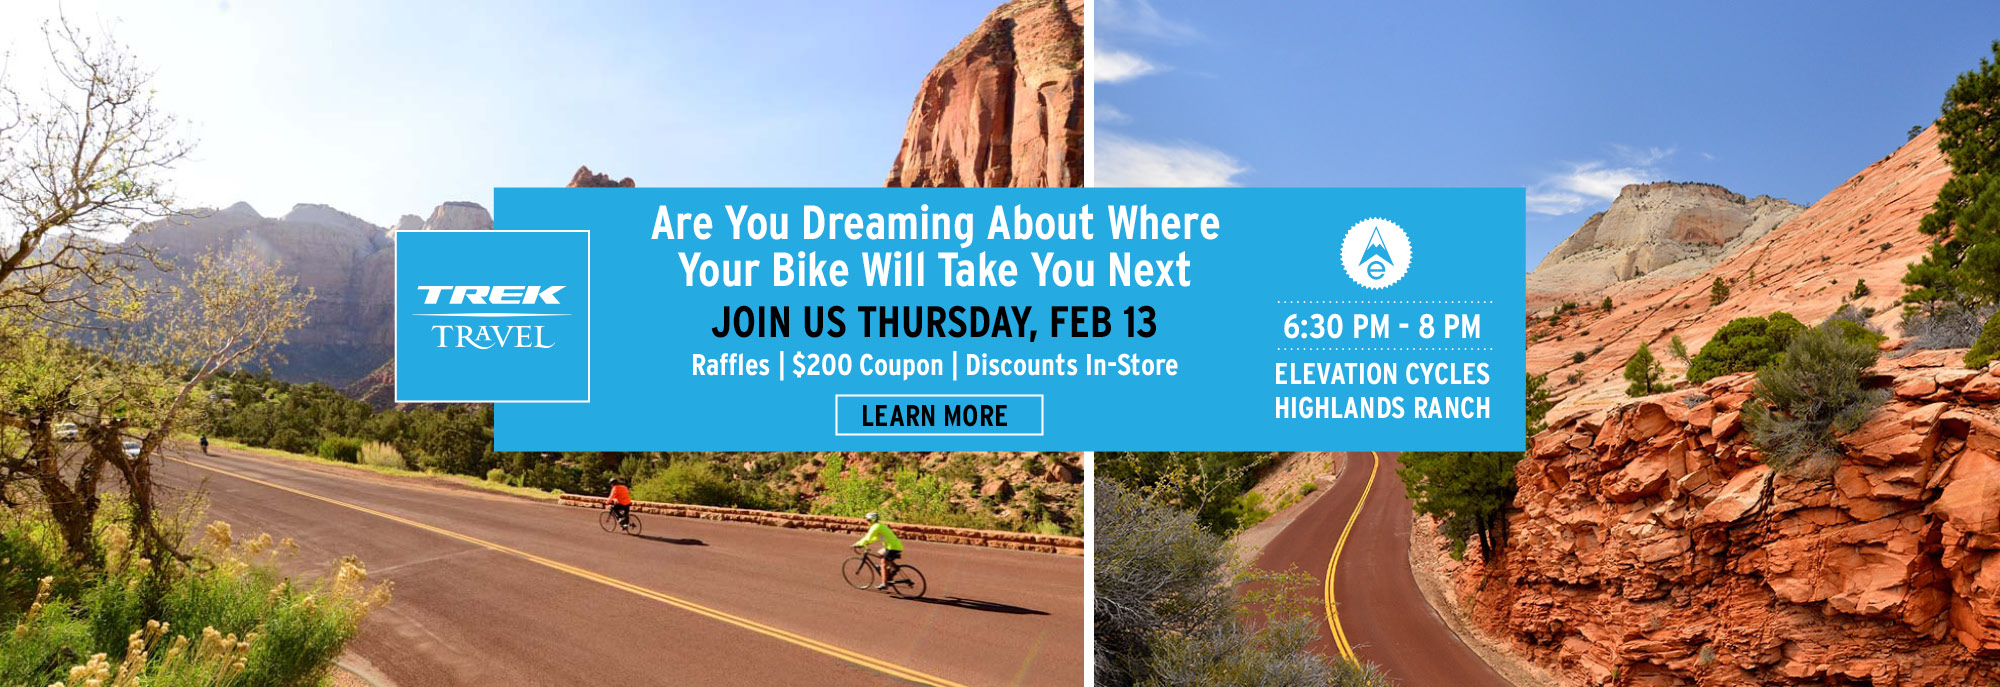 Trek Travel Night at Elevation Cycles Highlands Ranch February 13, 2020